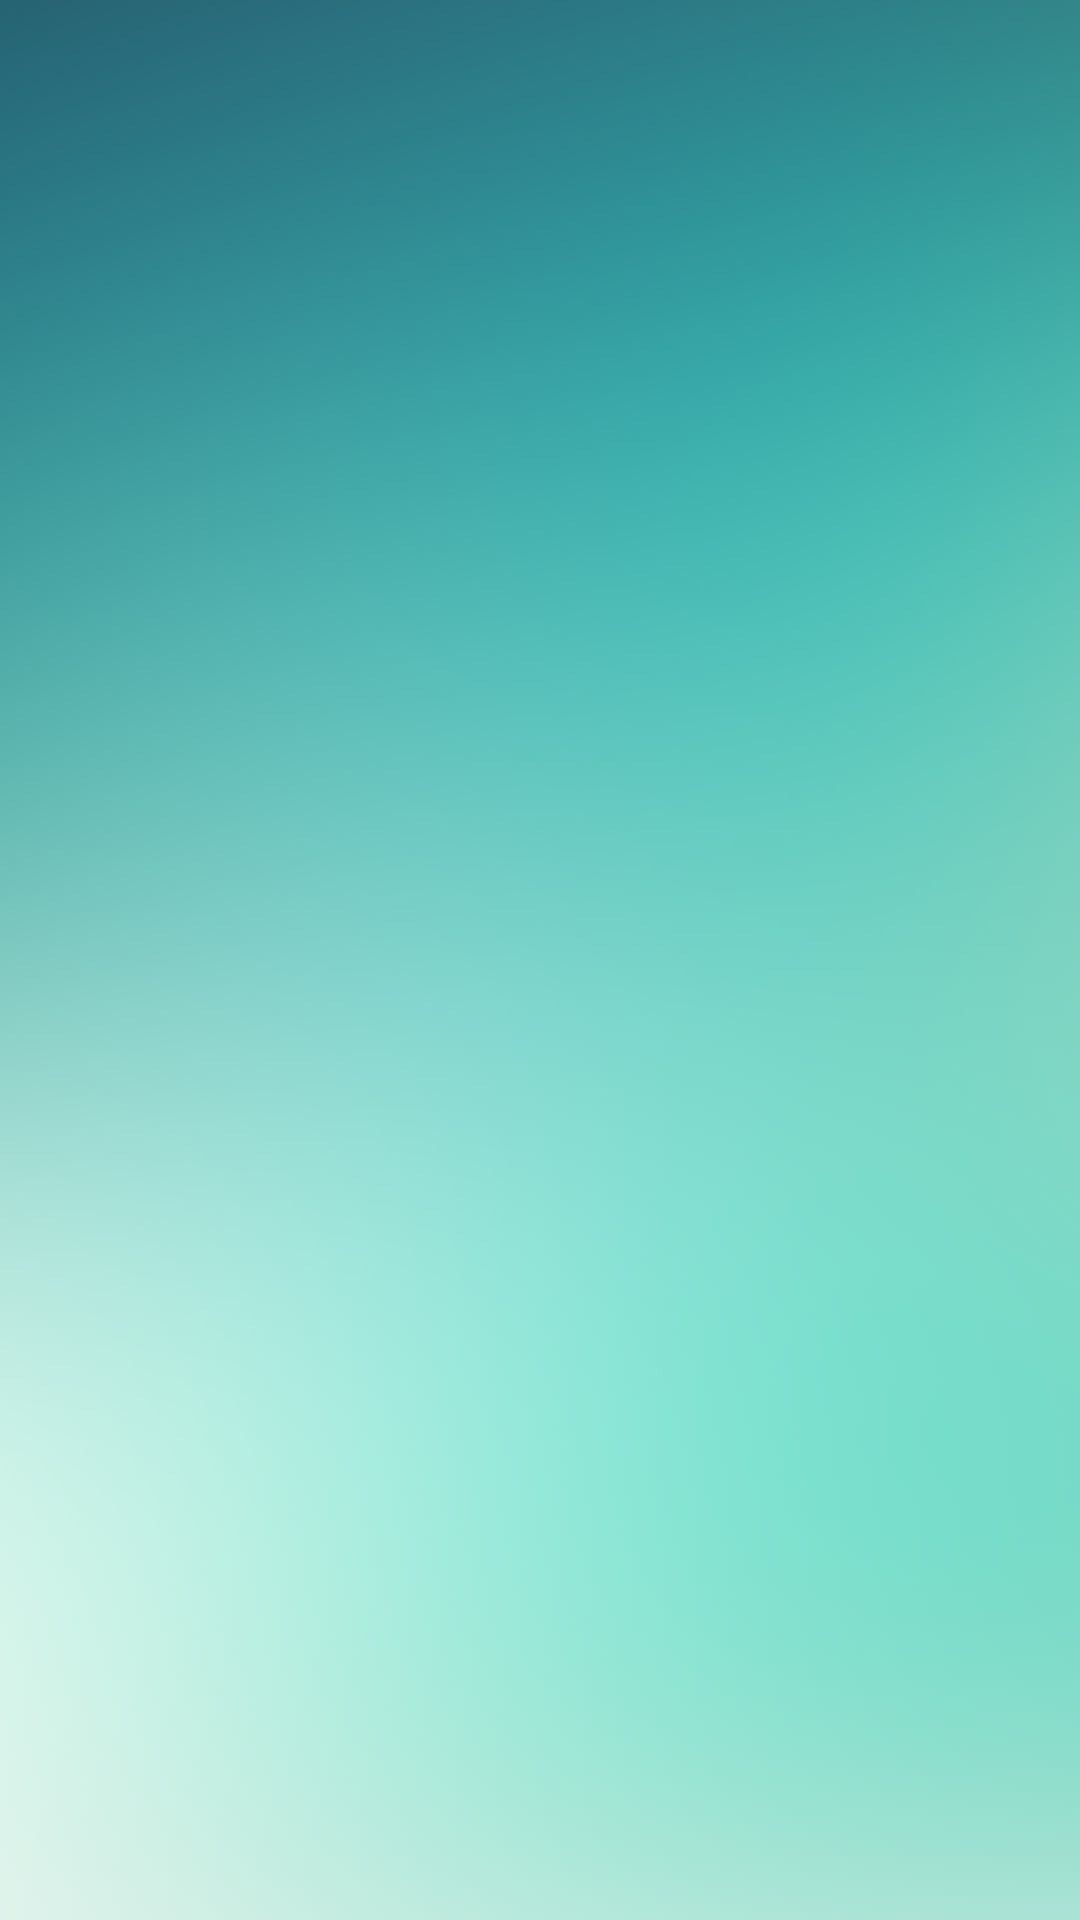 Android Solid Color Wallpaper (71+ images)